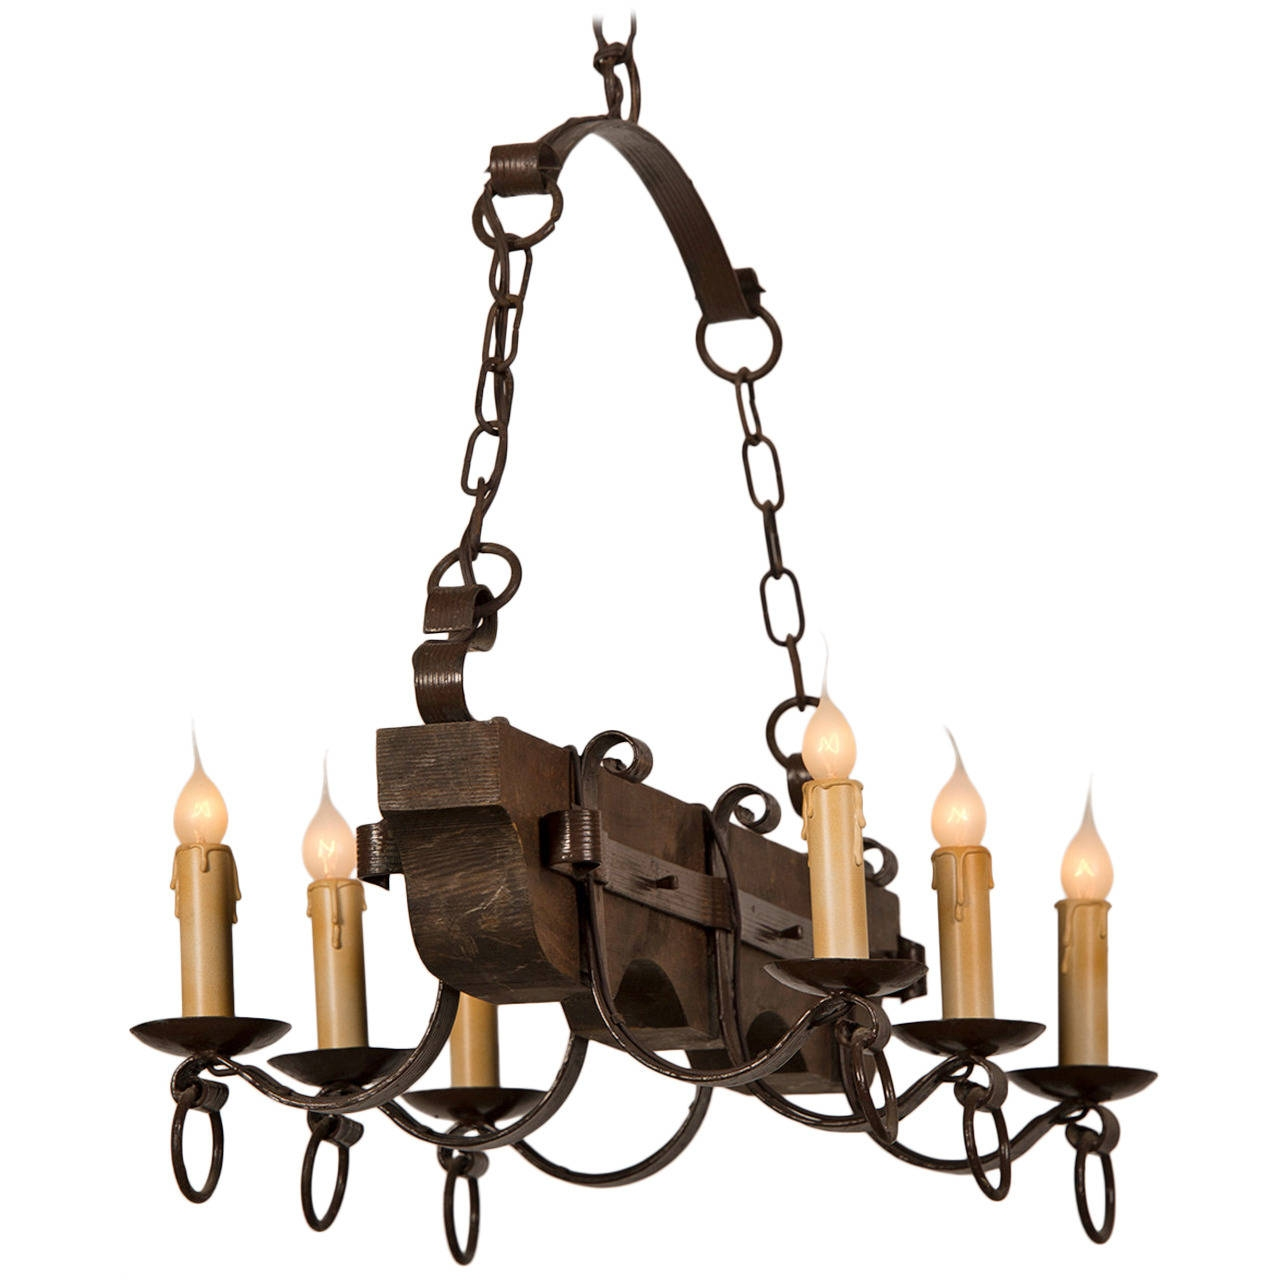 Black Wrought Iron Chandelier Lighting Roselawnlutheran Regarding Vintage Wrought Iron Chandelier (Image 4 of 15)